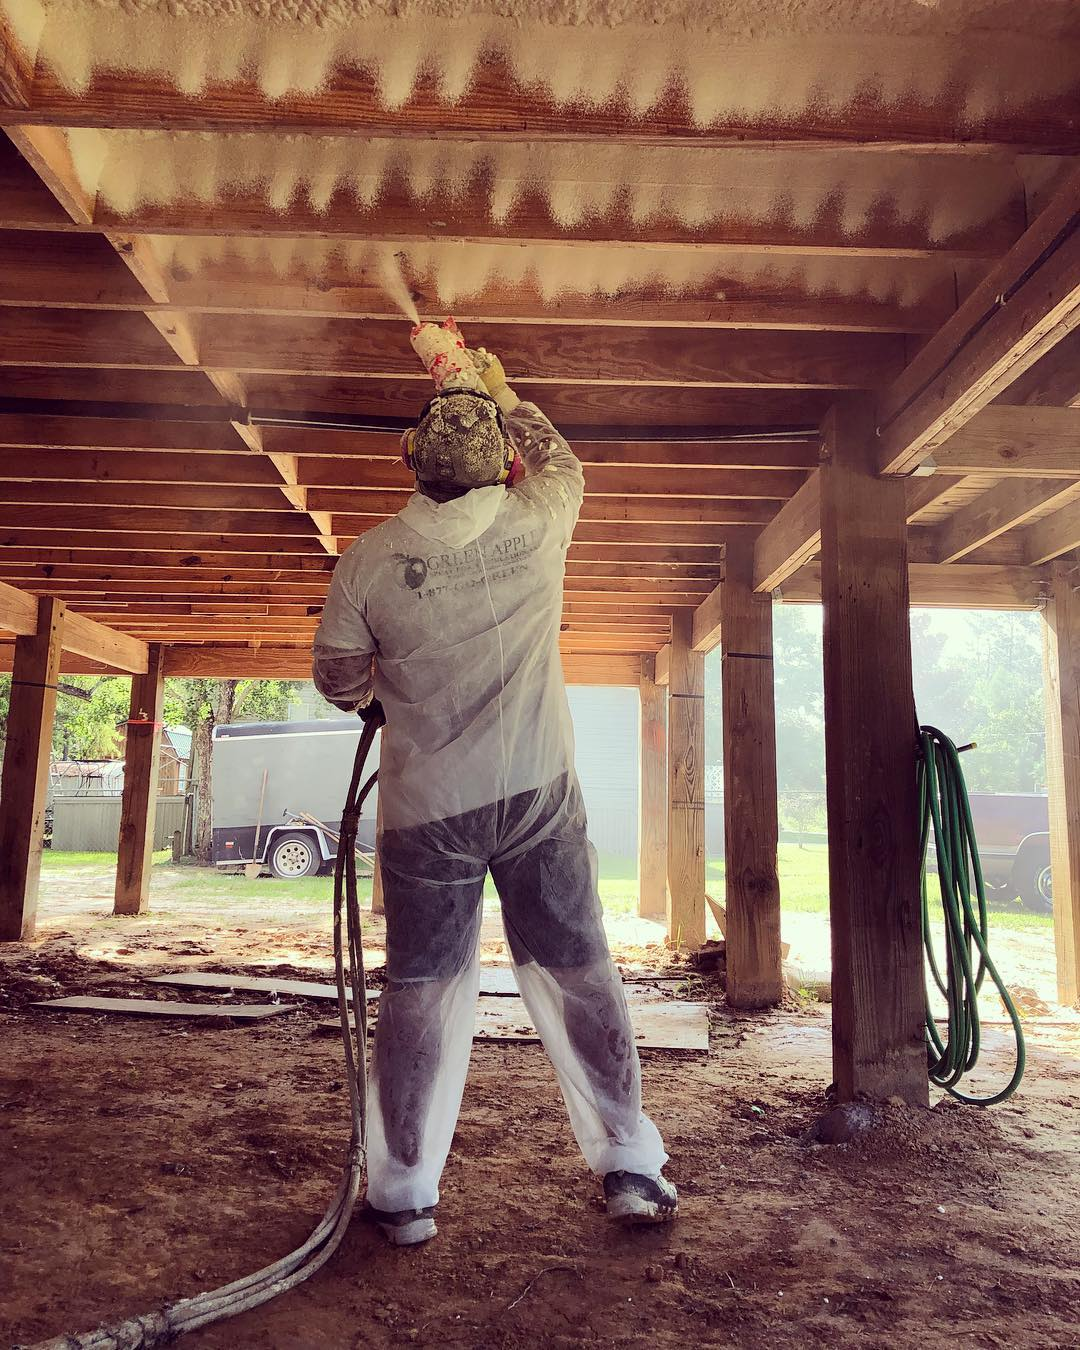 spraying closed cell spray foam under a new construction home